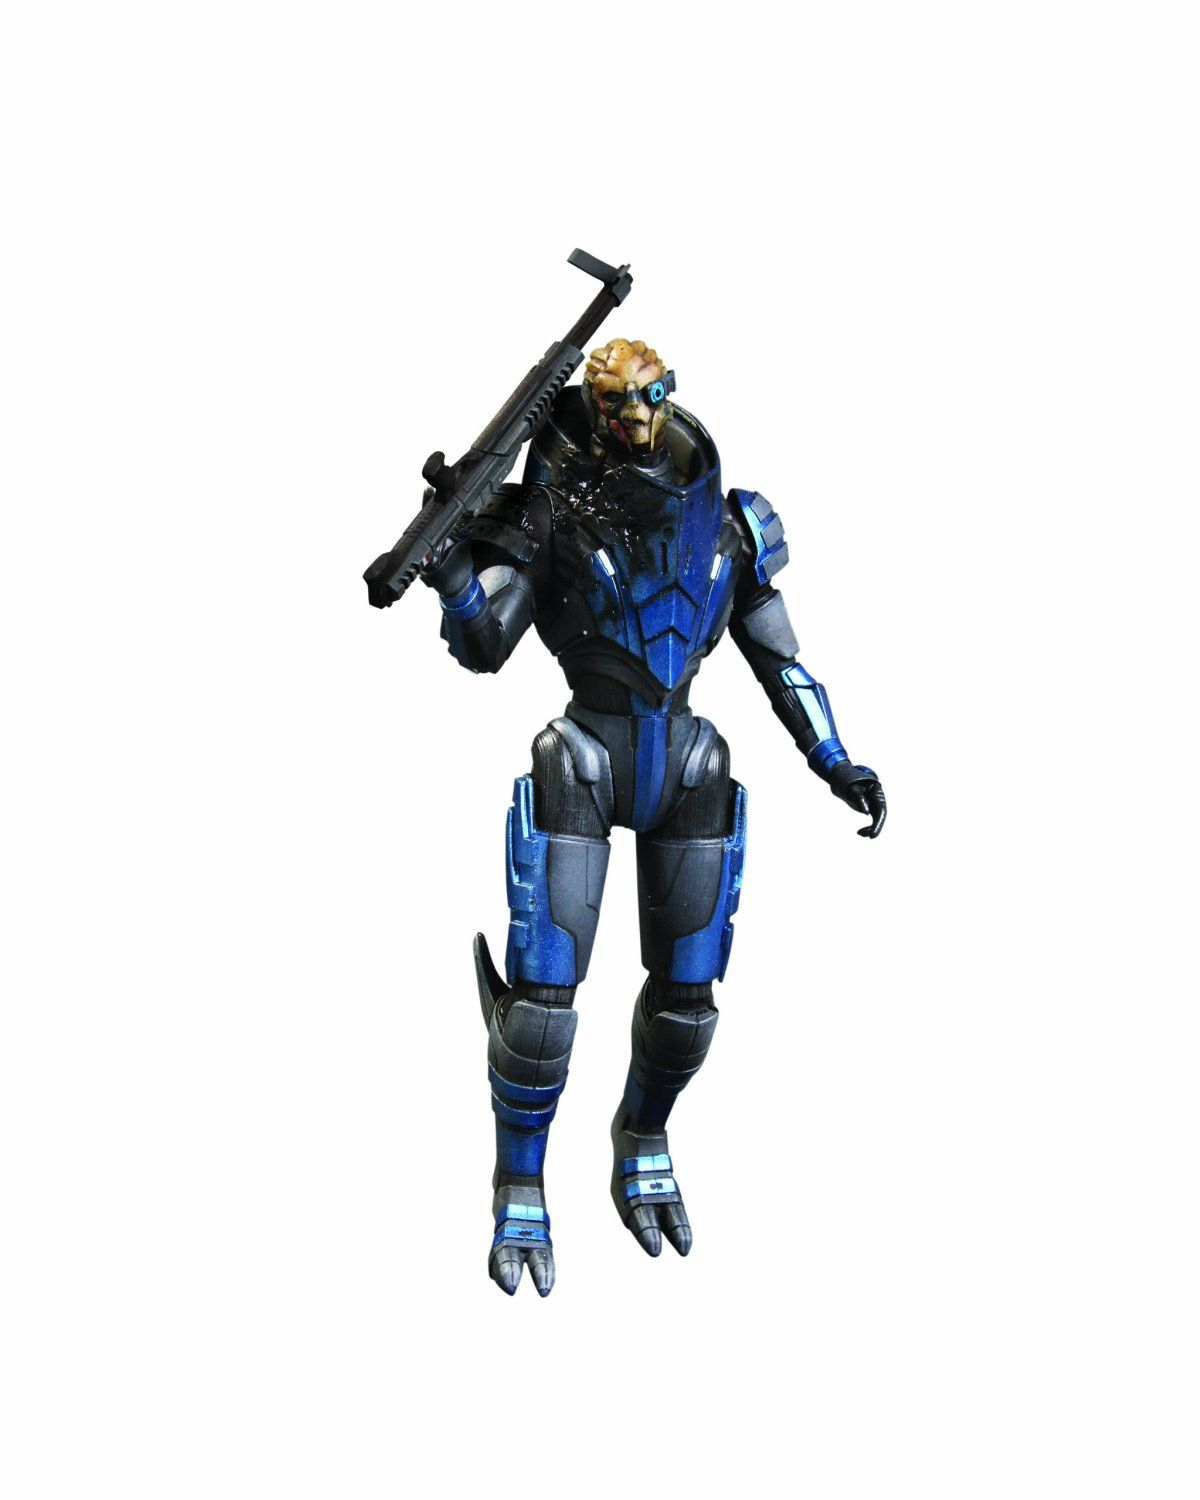 Mass Effect 3 Series 2 Garrus Action Figur Amazon De Kuche